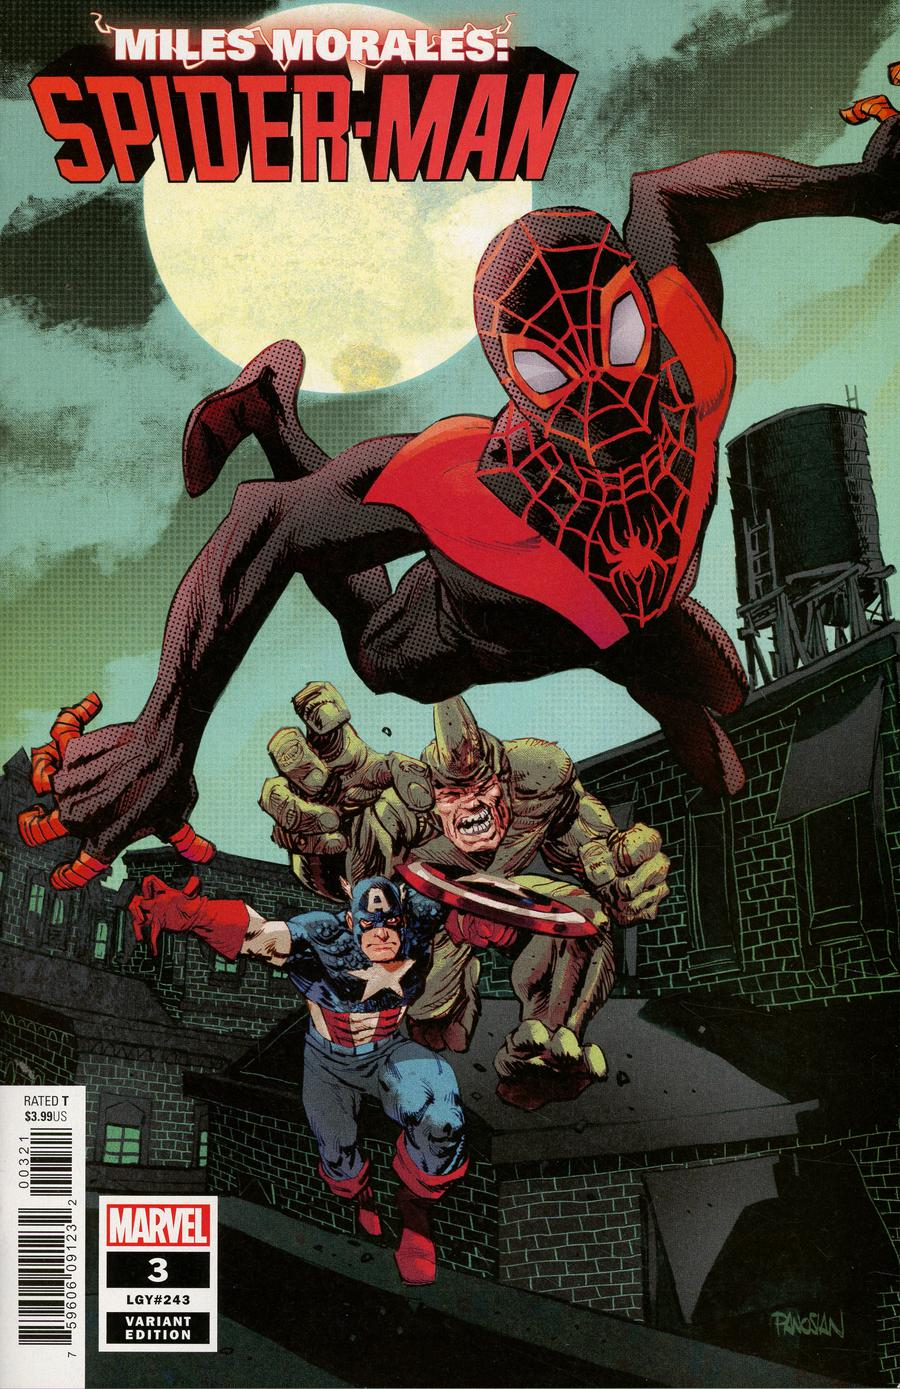 Miles Morales Spider-Man #3 Cover C Incentive Dan Panosian Variant Cover